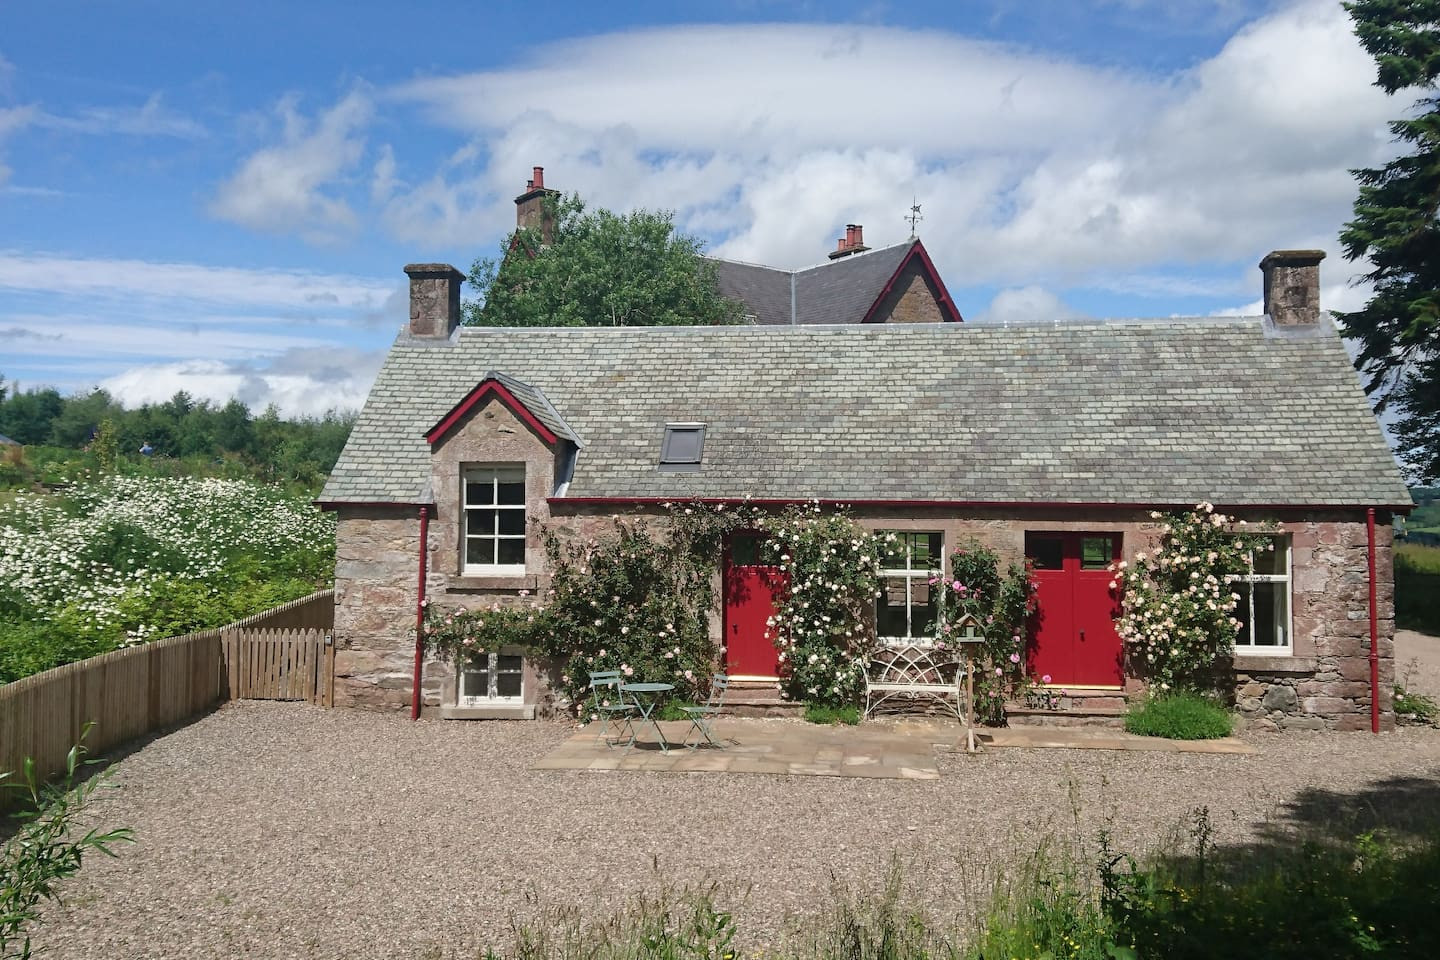 Rose Cottage - a sunny cottage smothered in scented roses